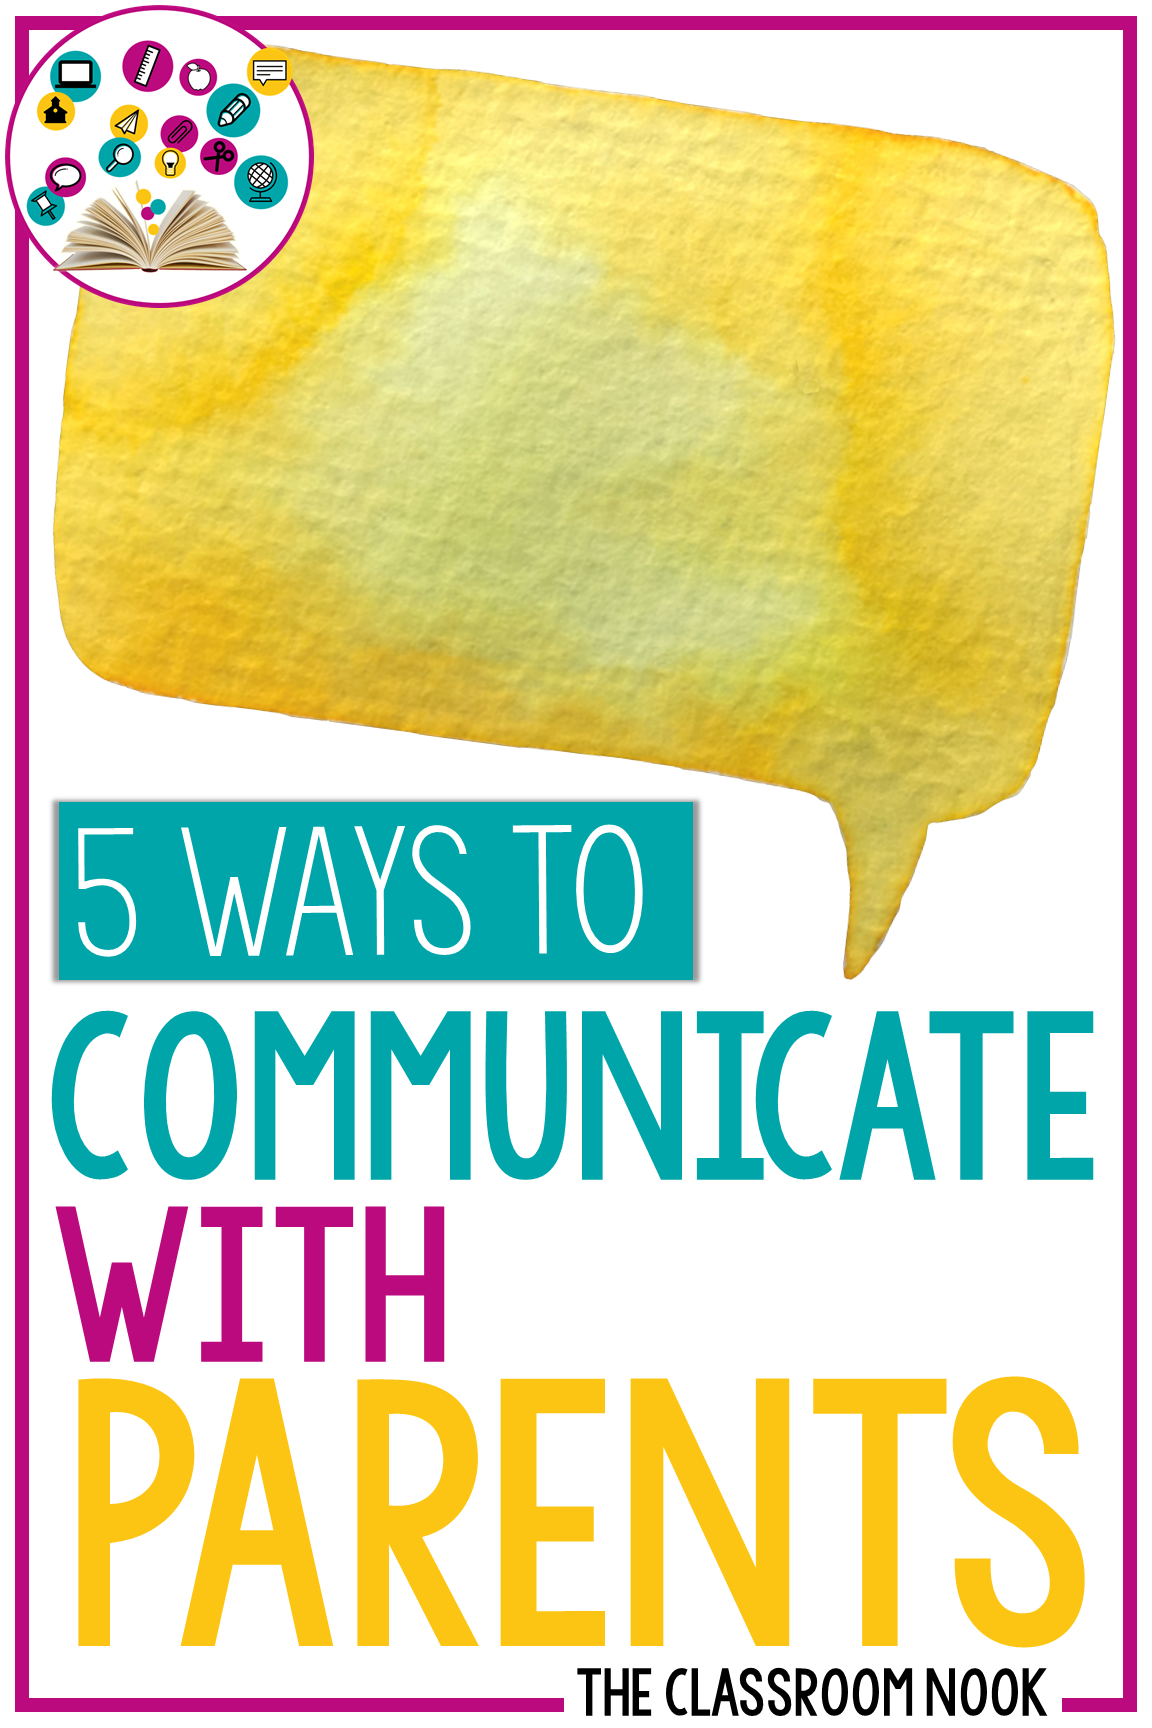 Looking for a new way to communicate with your students' parents? Try one of these 5 unique ways to build a strong school-to-home relationship. #parentcommunication #backtoschool